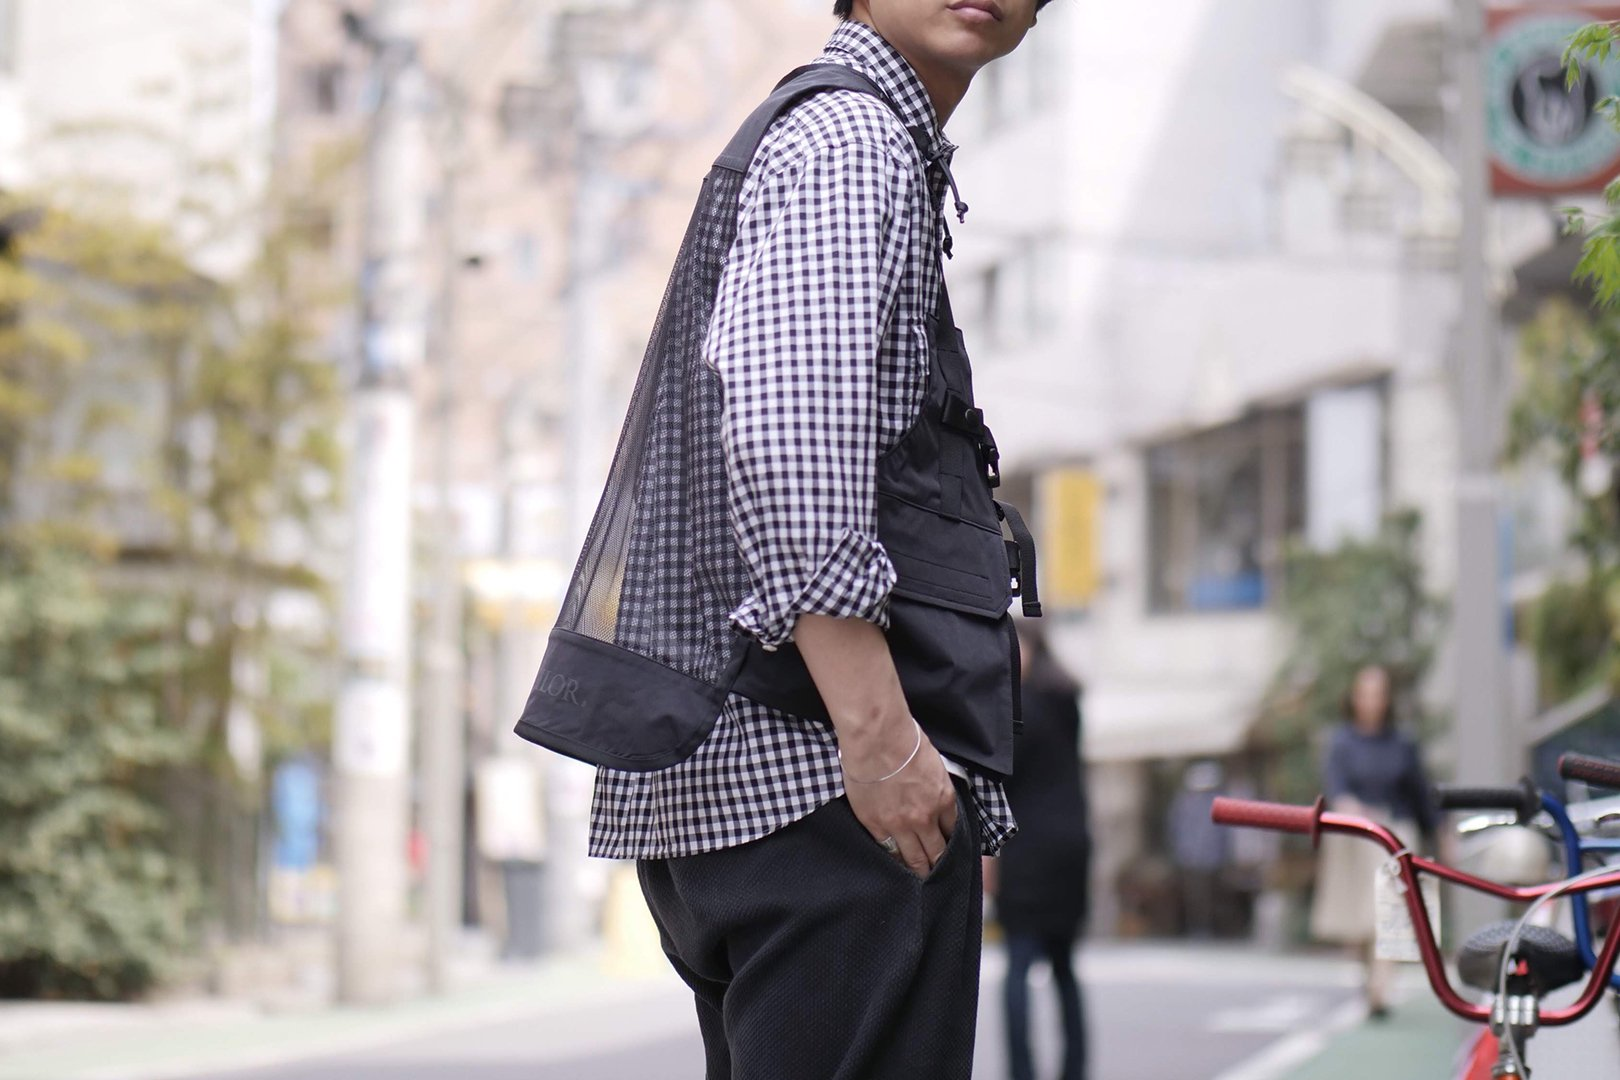 <img class='new_mark_img1' src='https://img.shop-pro.jp/img/new/icons5.gif' style='border:none;display:inline;margin:0px;padding:0px;width:auto;' />MOUT RECON TAILOR / Shooting Vest